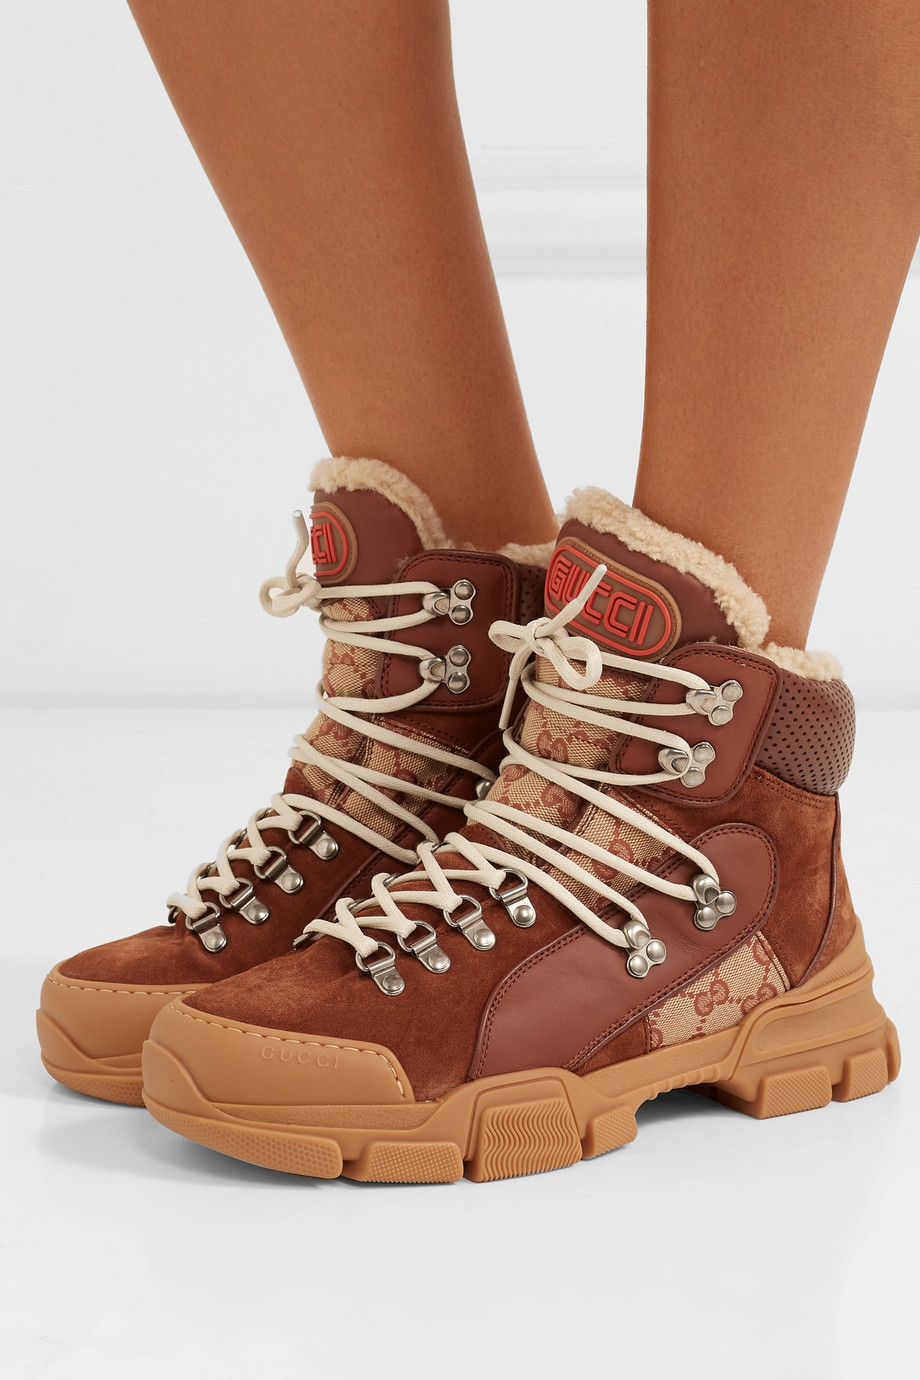 Gucci Flashtrek faux shearling-trimmed suede, leather and printed coated-canvas boots